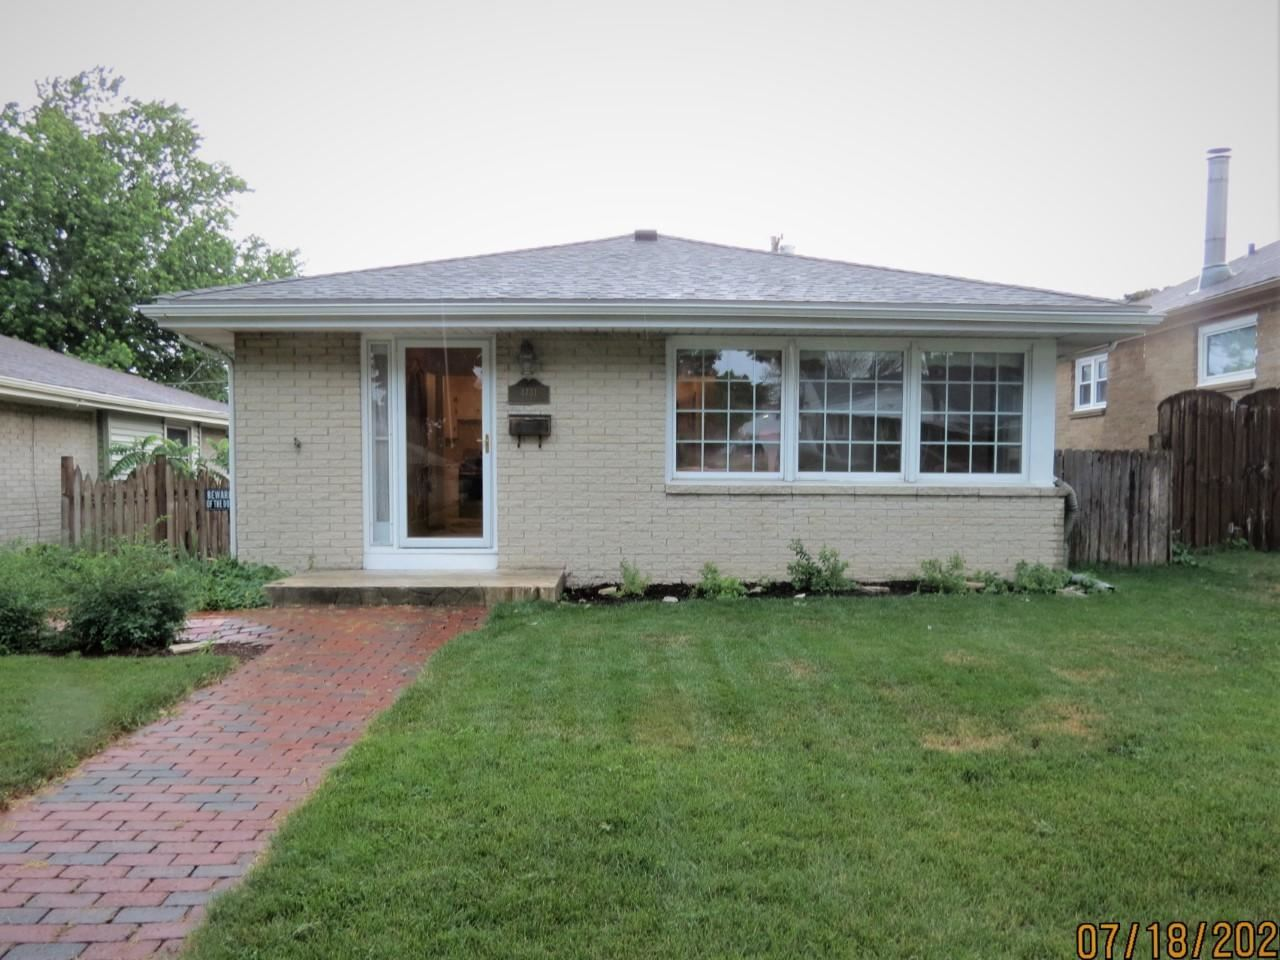 4731 N 80th St, Milwaukee, WI 53218 - #: 1699798